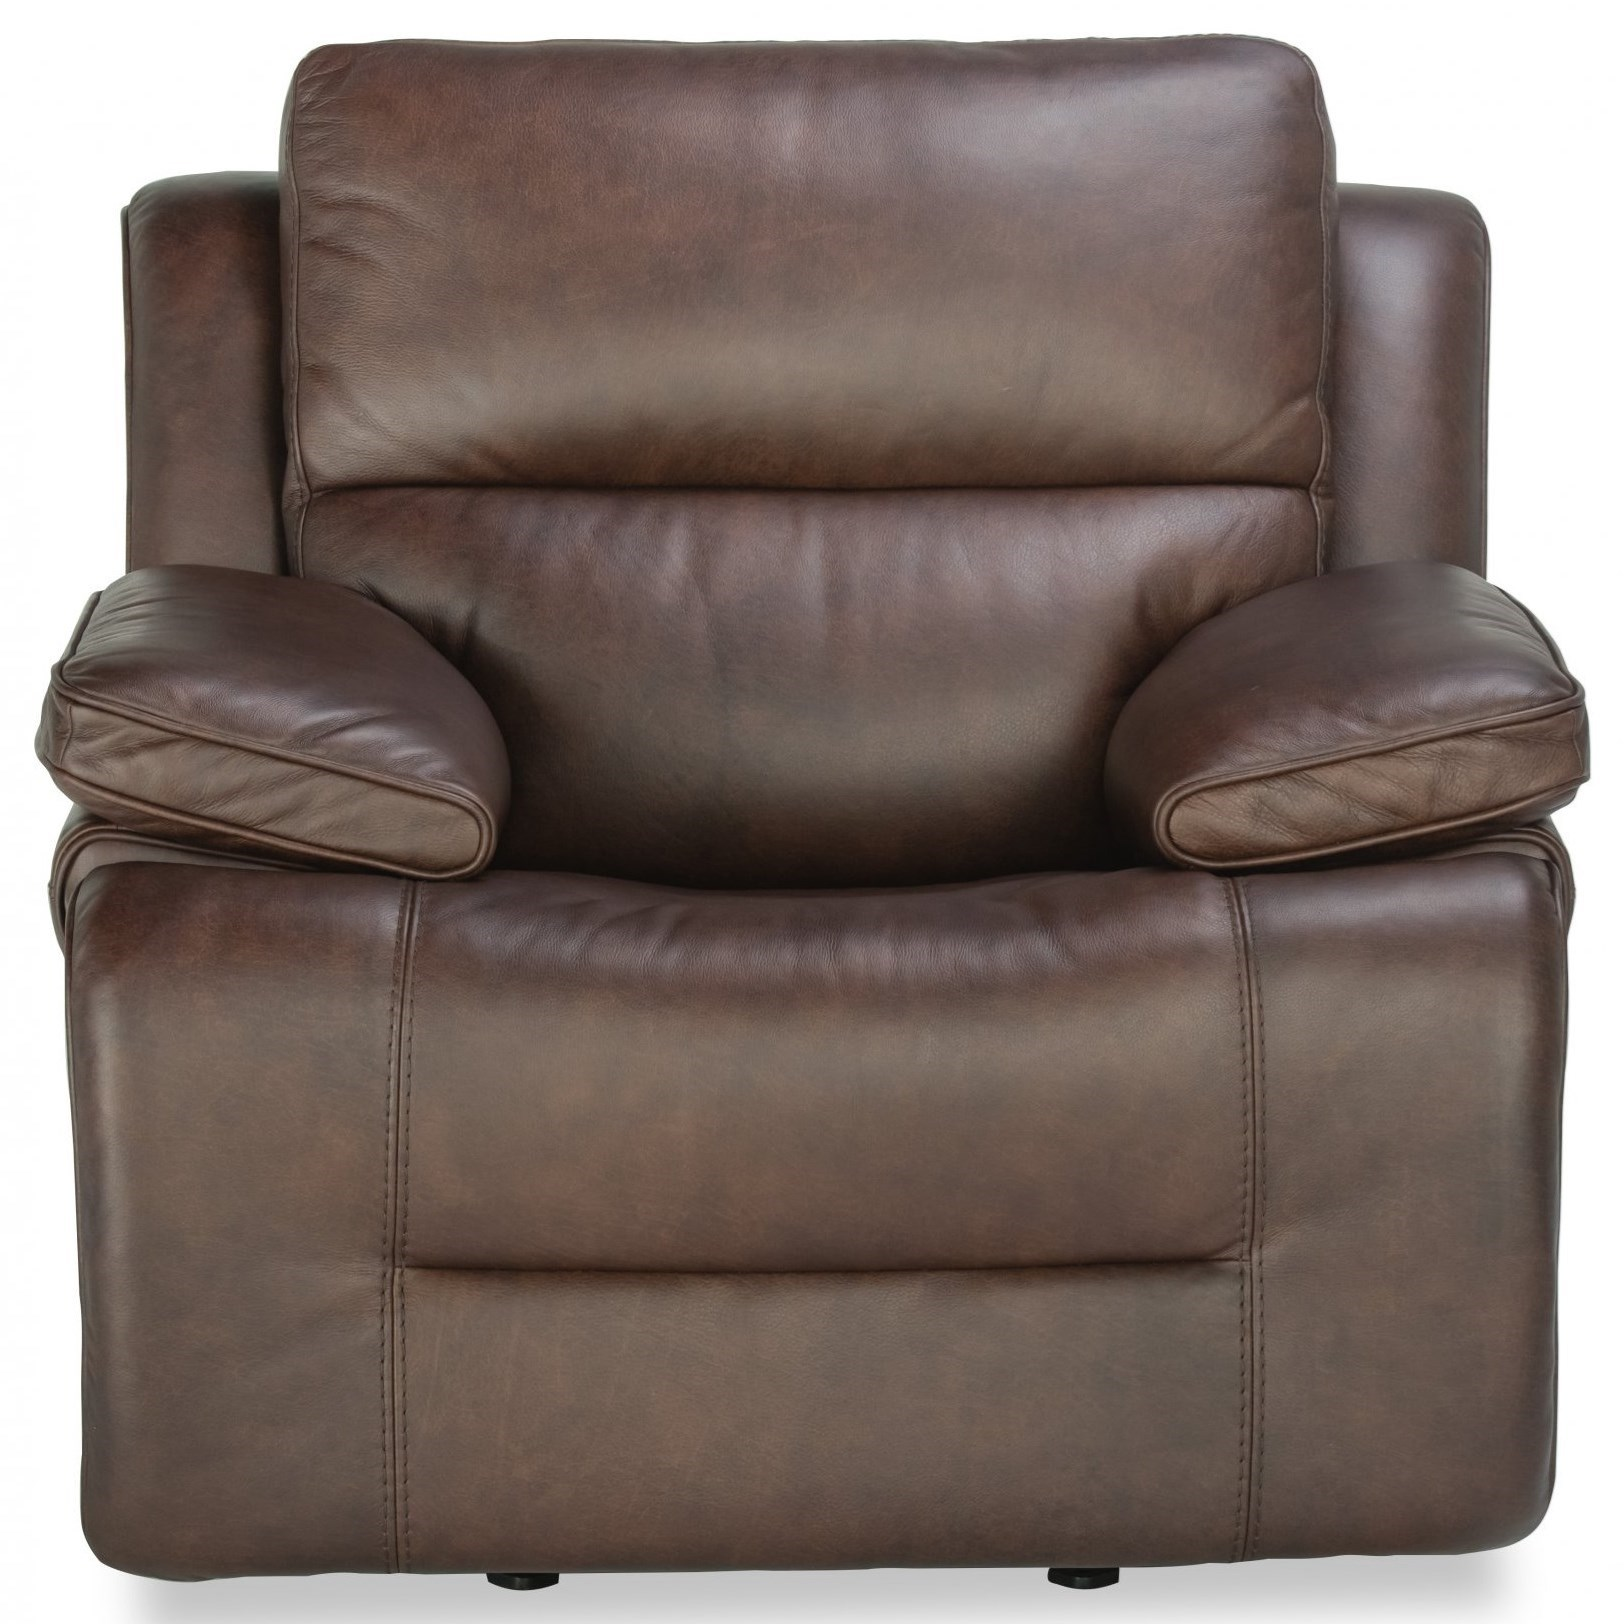 Apollo Power Gliding Recliner by Flexsteel at Steger's Furniture